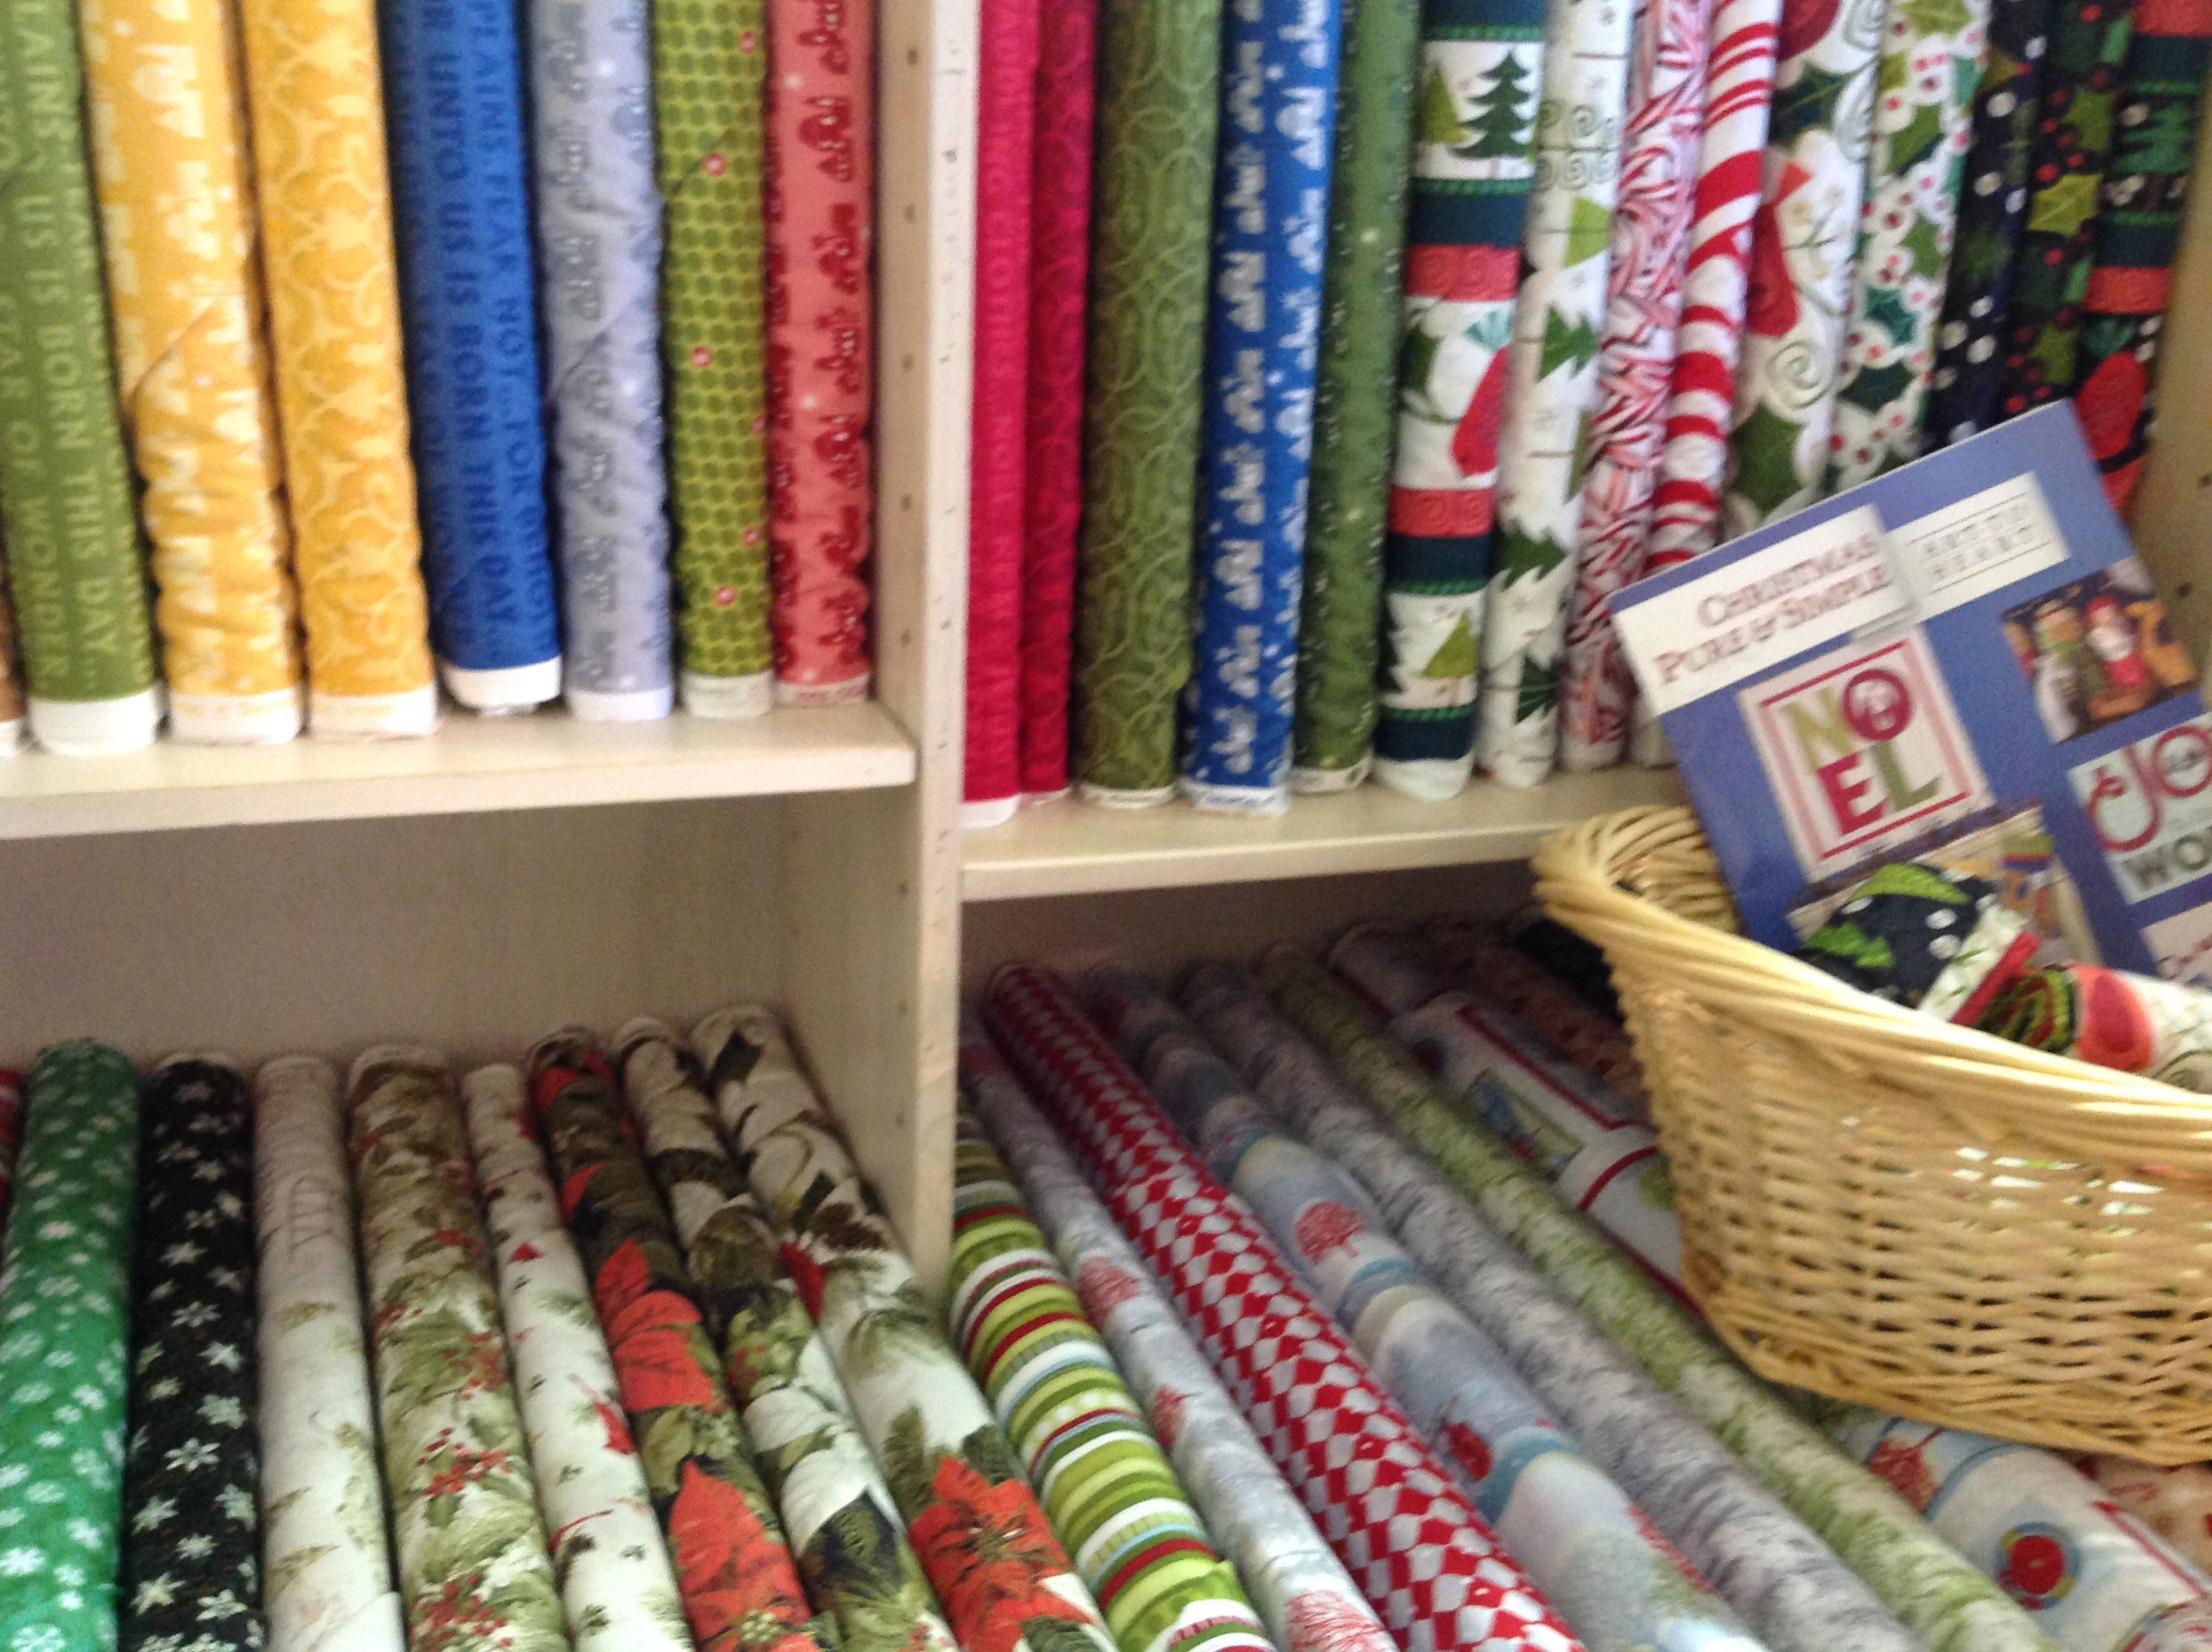 Some of the 40% off fabric.